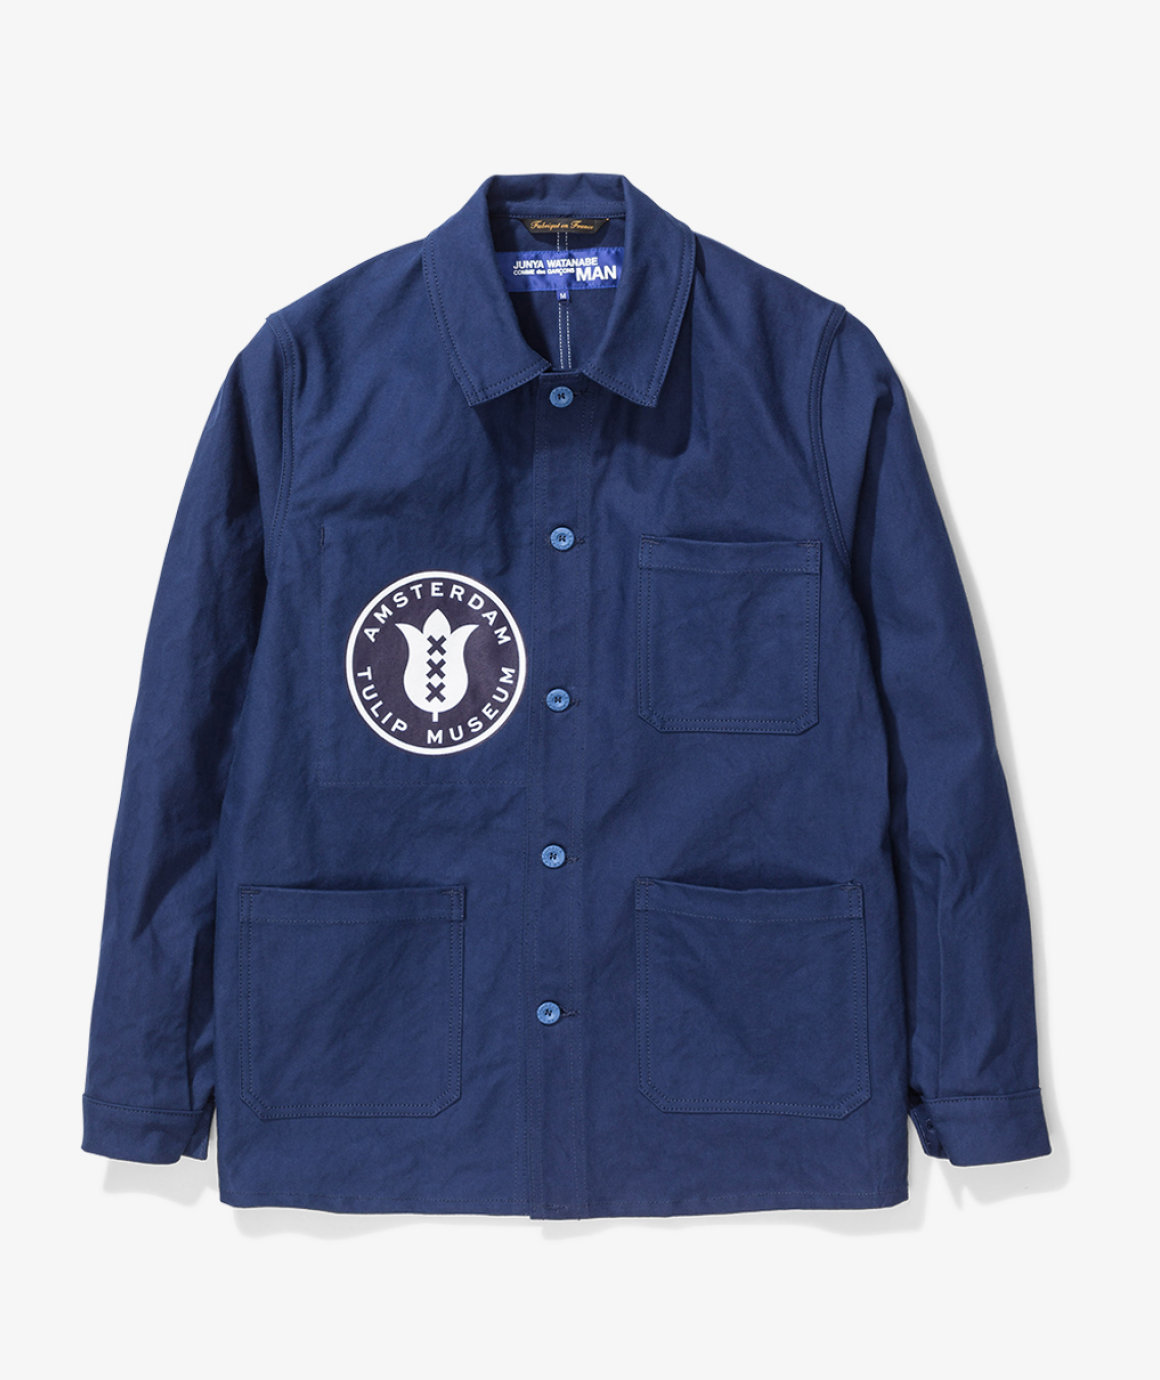 Work Jacket by Junya Watanabe MAN